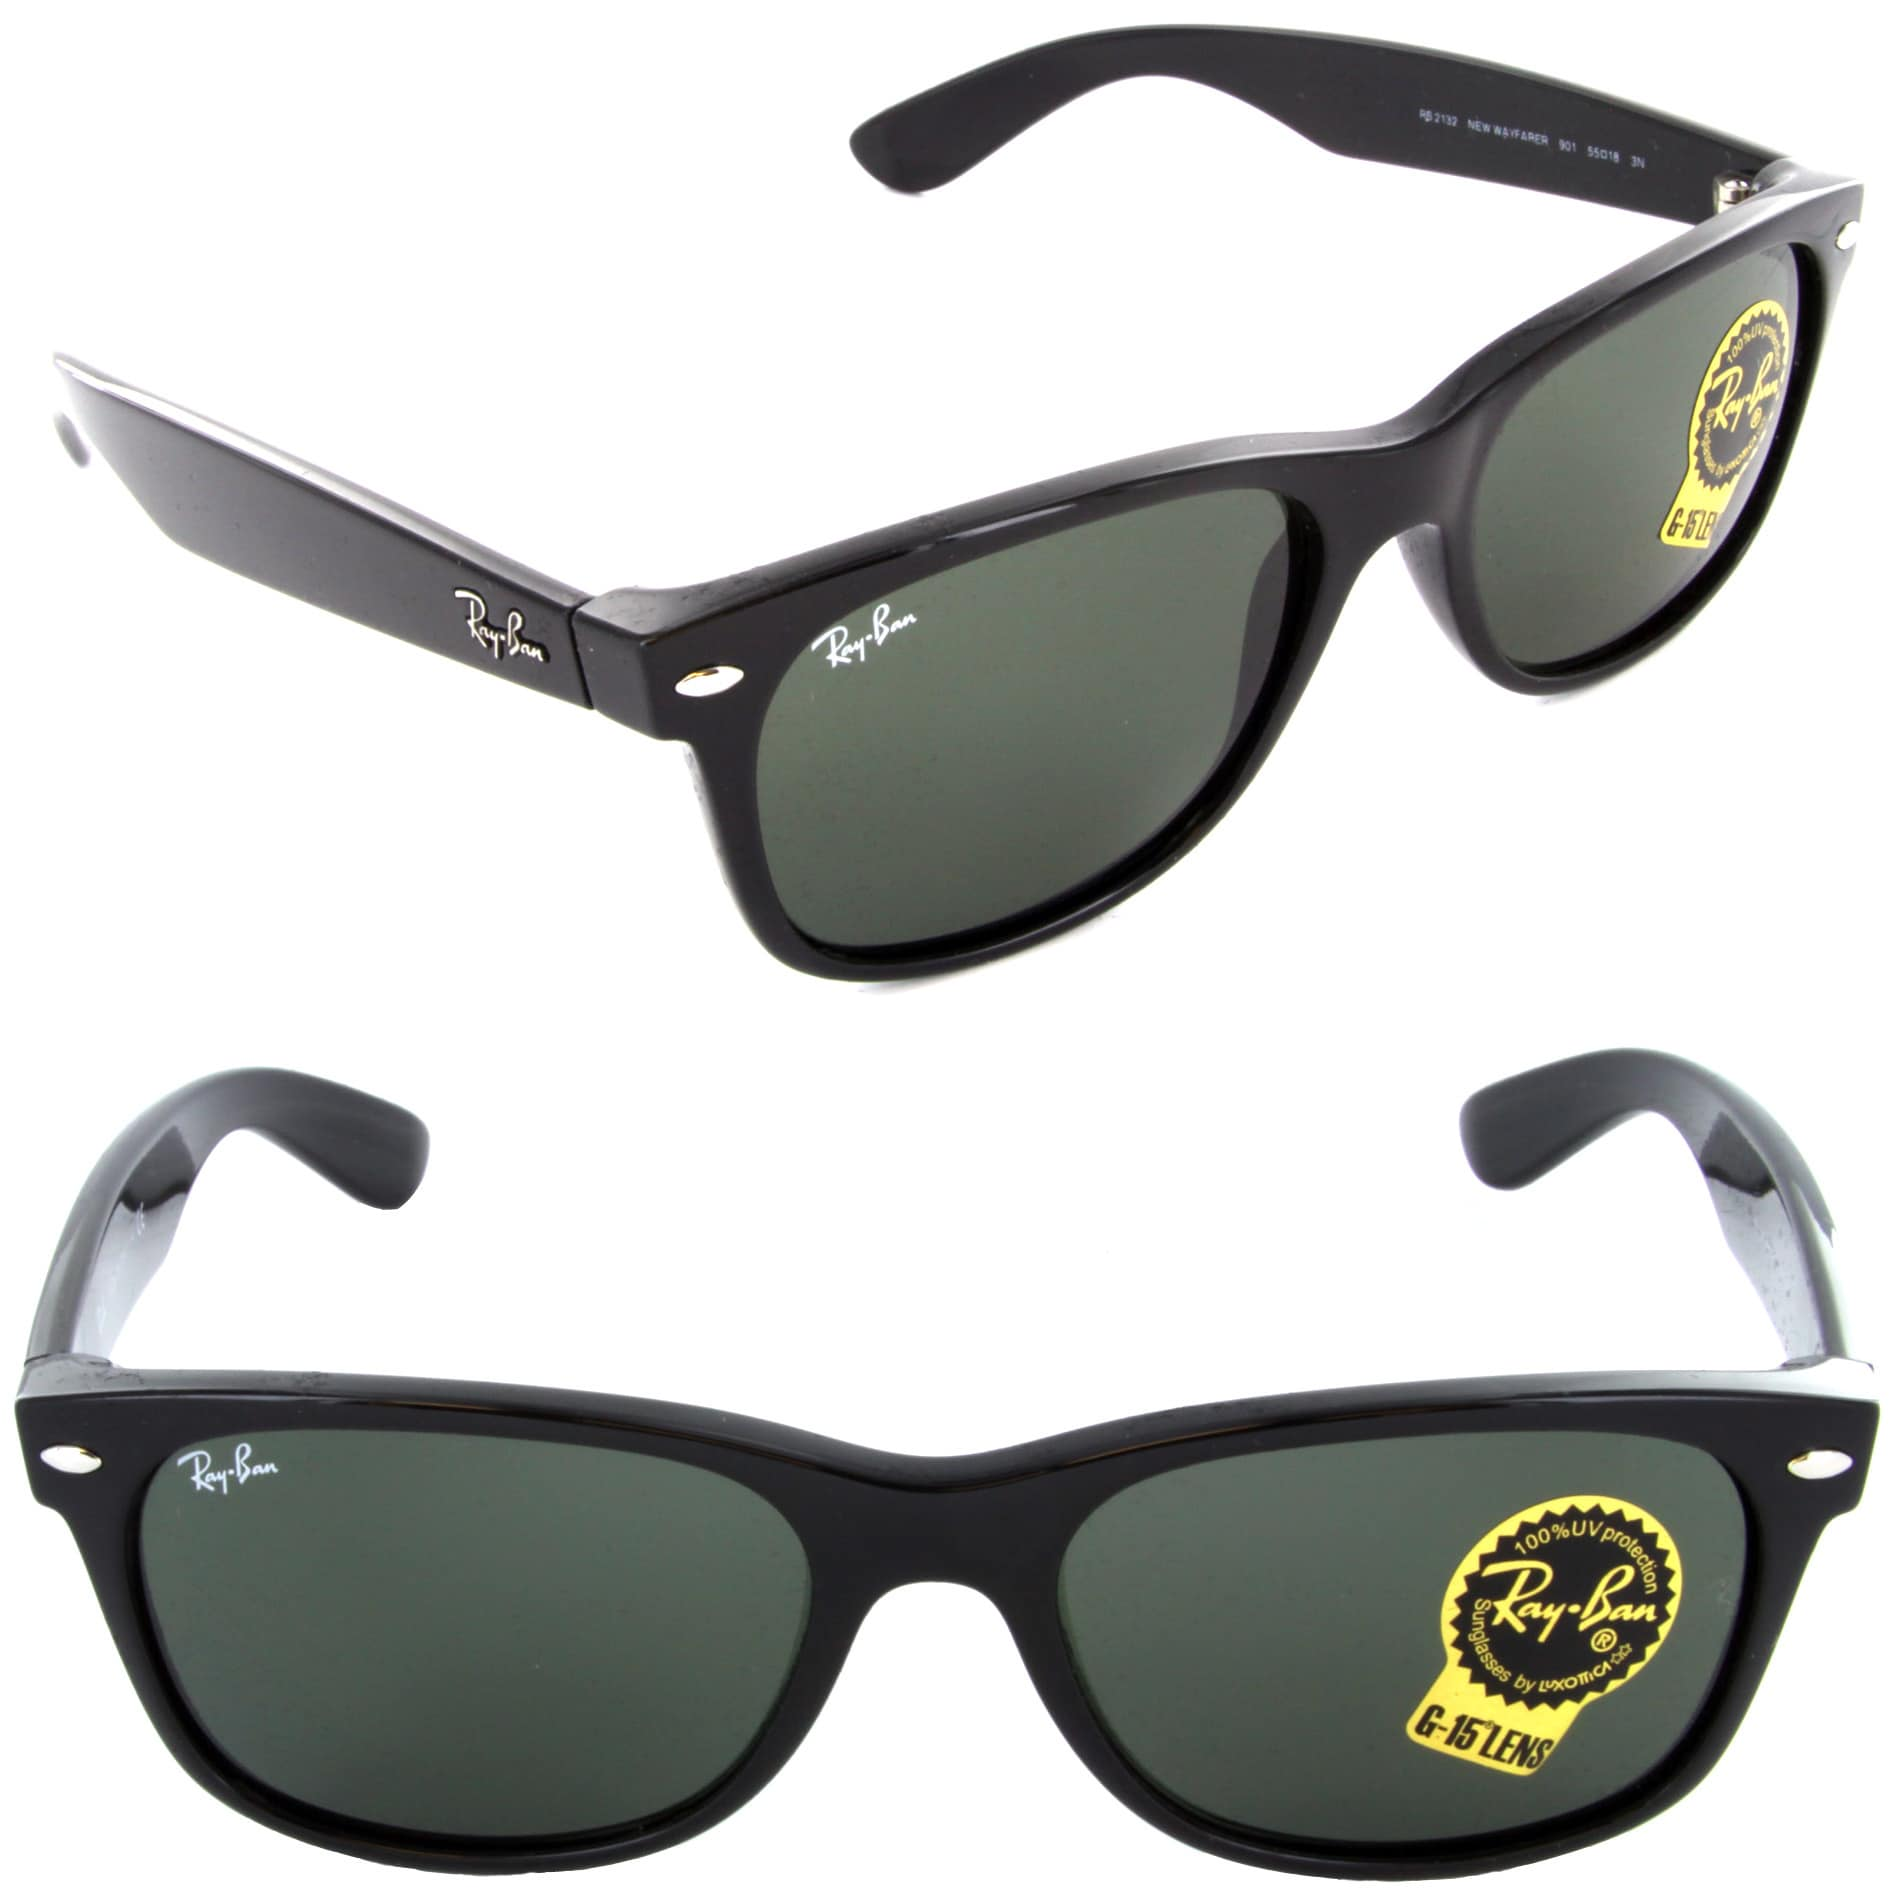 ba2659b04c2 Shop Ray-Ban New Wayfarer Classic RB 2132 Unisex Black Frame Green Classic Lens  Sunglasses - Free Shipping Today - Overstock - 5173946